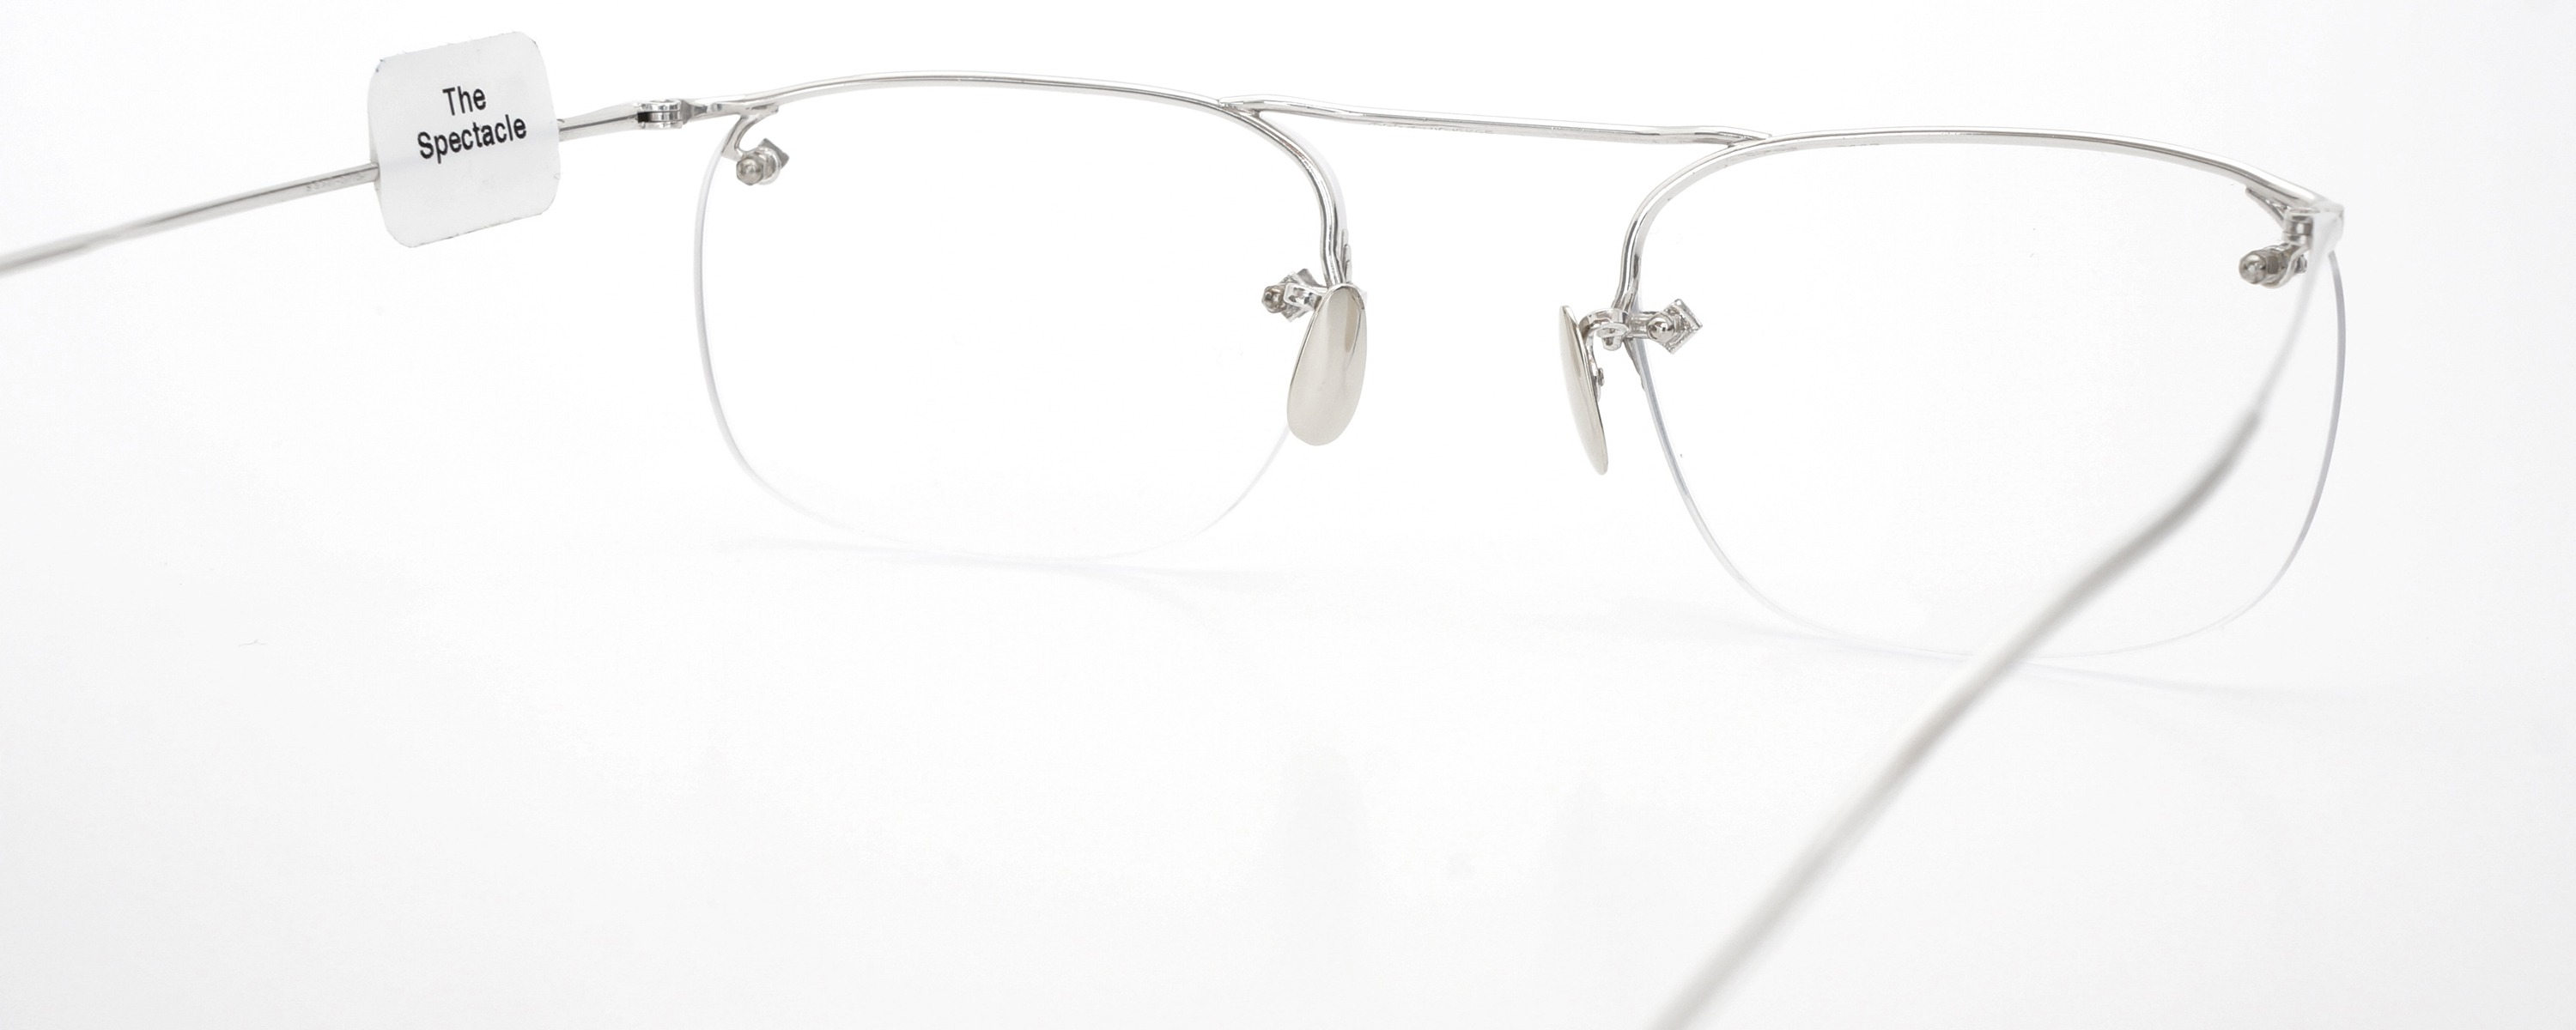 The Spectacle メガネ 1940 American Optical Everjax Bar Sterling WG 12kPads 49-21 イメージ8